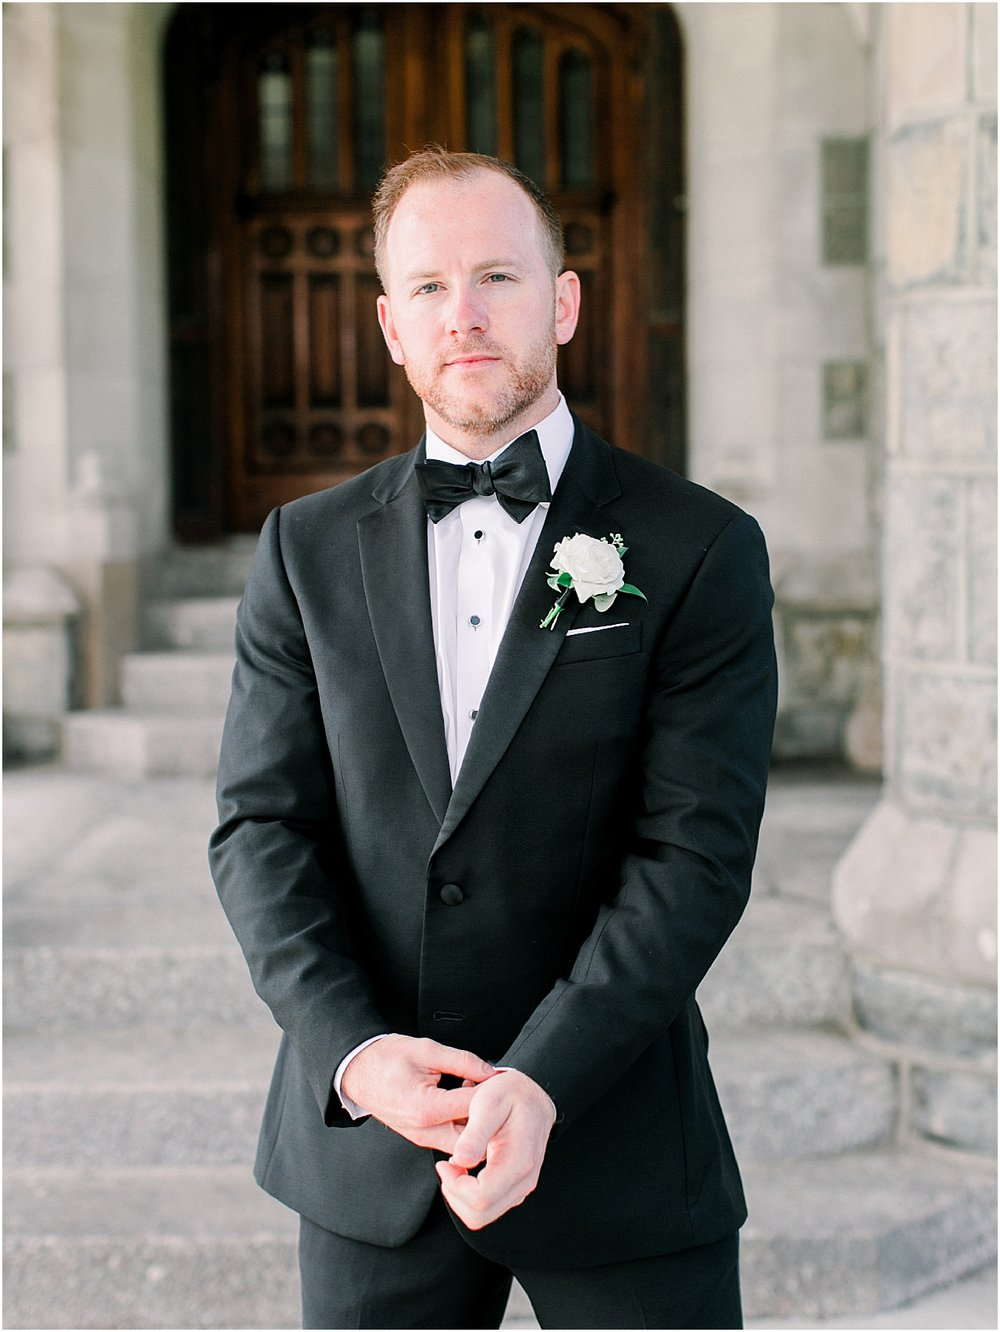 our_wedding_day_troy_NY_emma_willard_fairy_tale_royal_neutral_beauty_and_the_beast_moped_private_estate_cape_cod_boston_wedding_photographer_meredith_jane_photography_chris_kerr_photo_1961.jpg